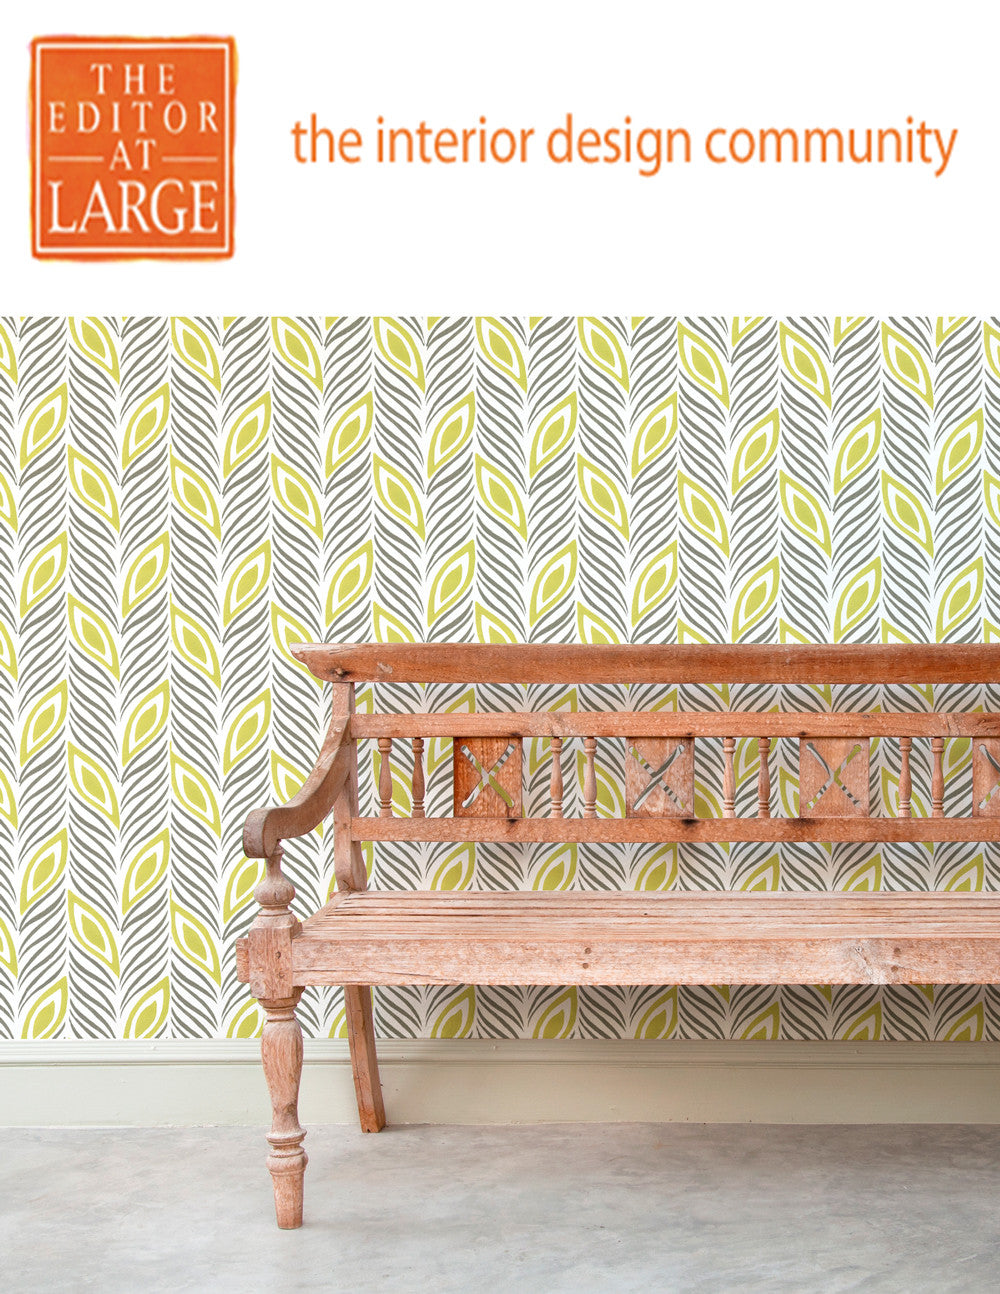 Sarah & Ruby bold, colorful, handprinted wallpaper featured in Editor at Large Lookbook